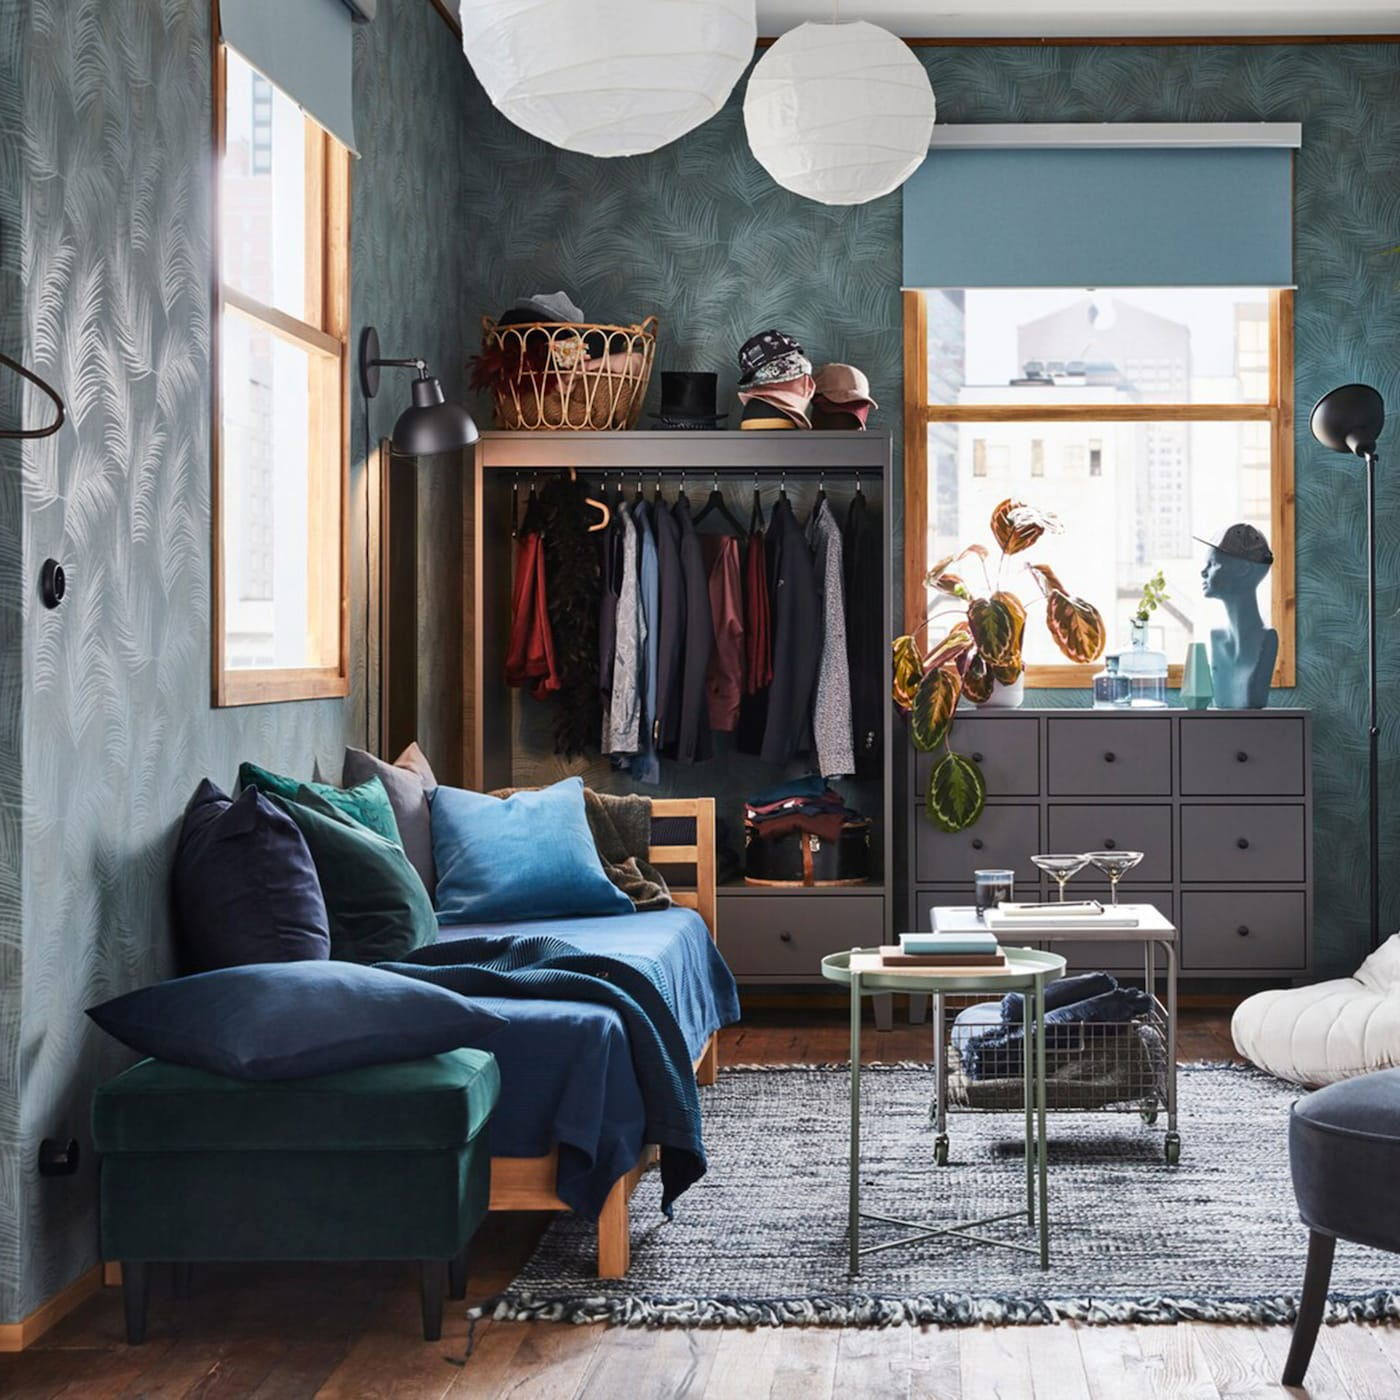 In this small modern studio apartment, the storage cabinet, wardrobe and drawer unit are placed against different walls to make the living space more airy.